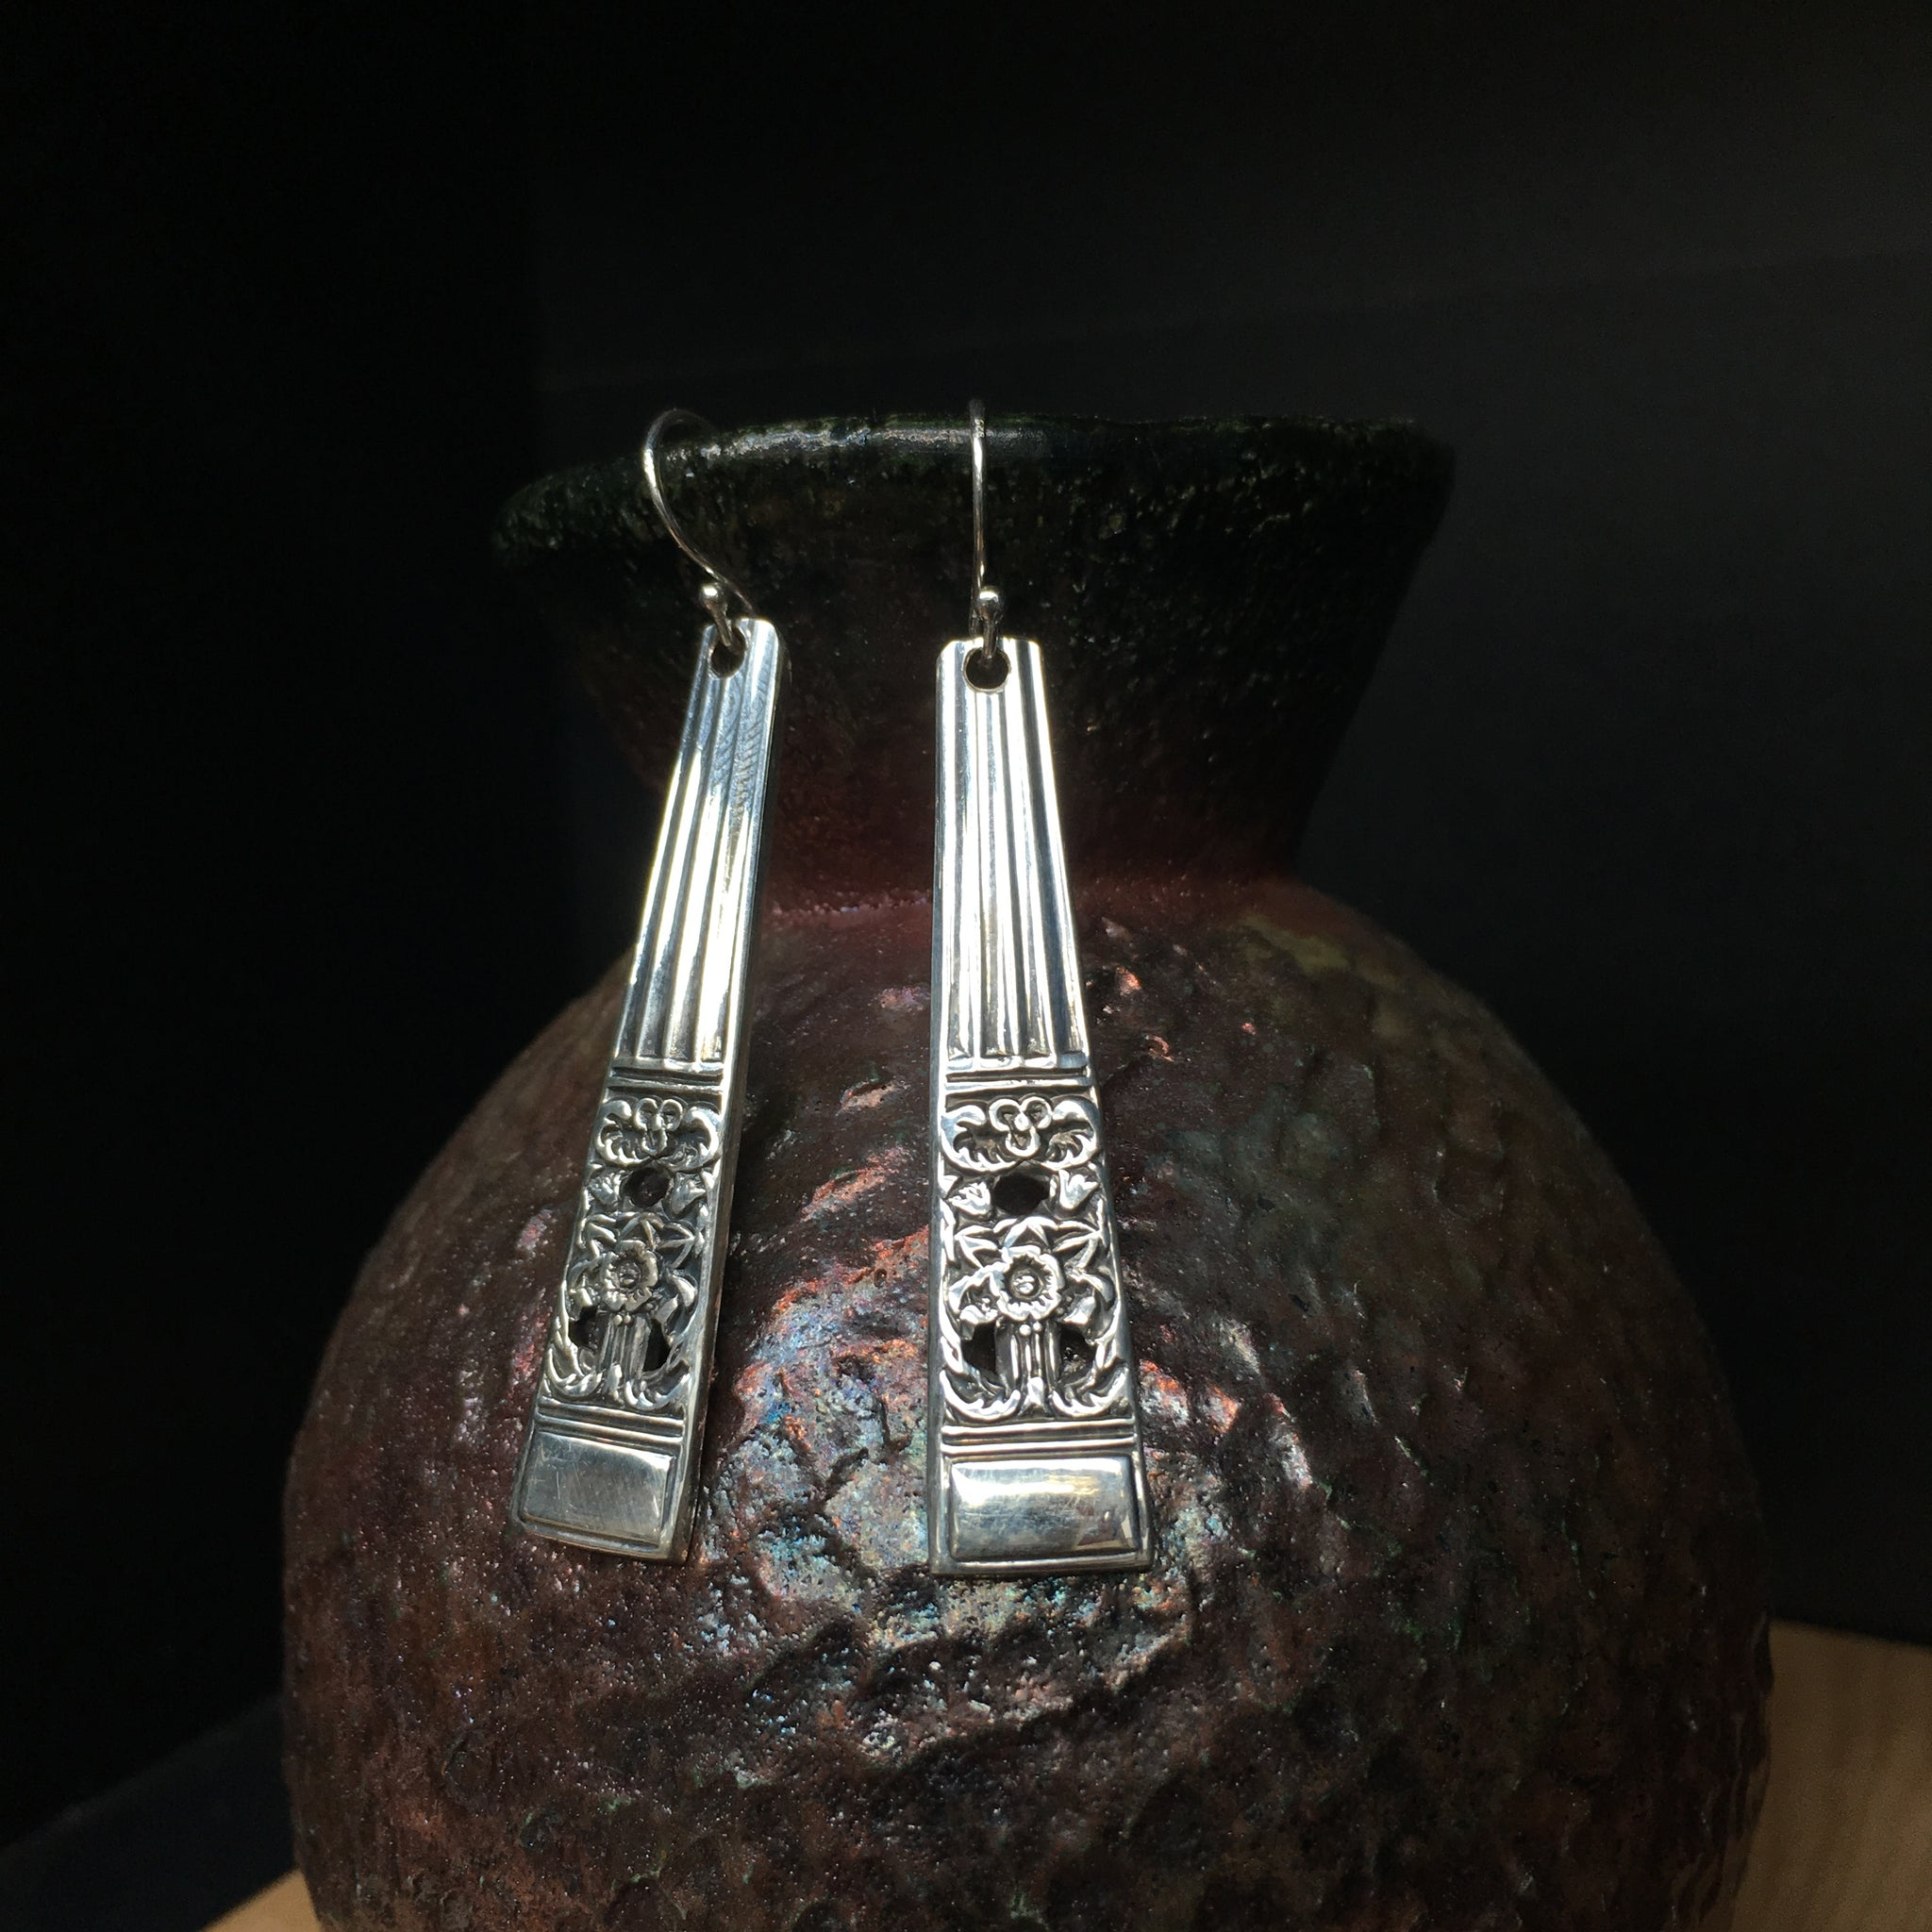 Earrings crafted from vintage spoons